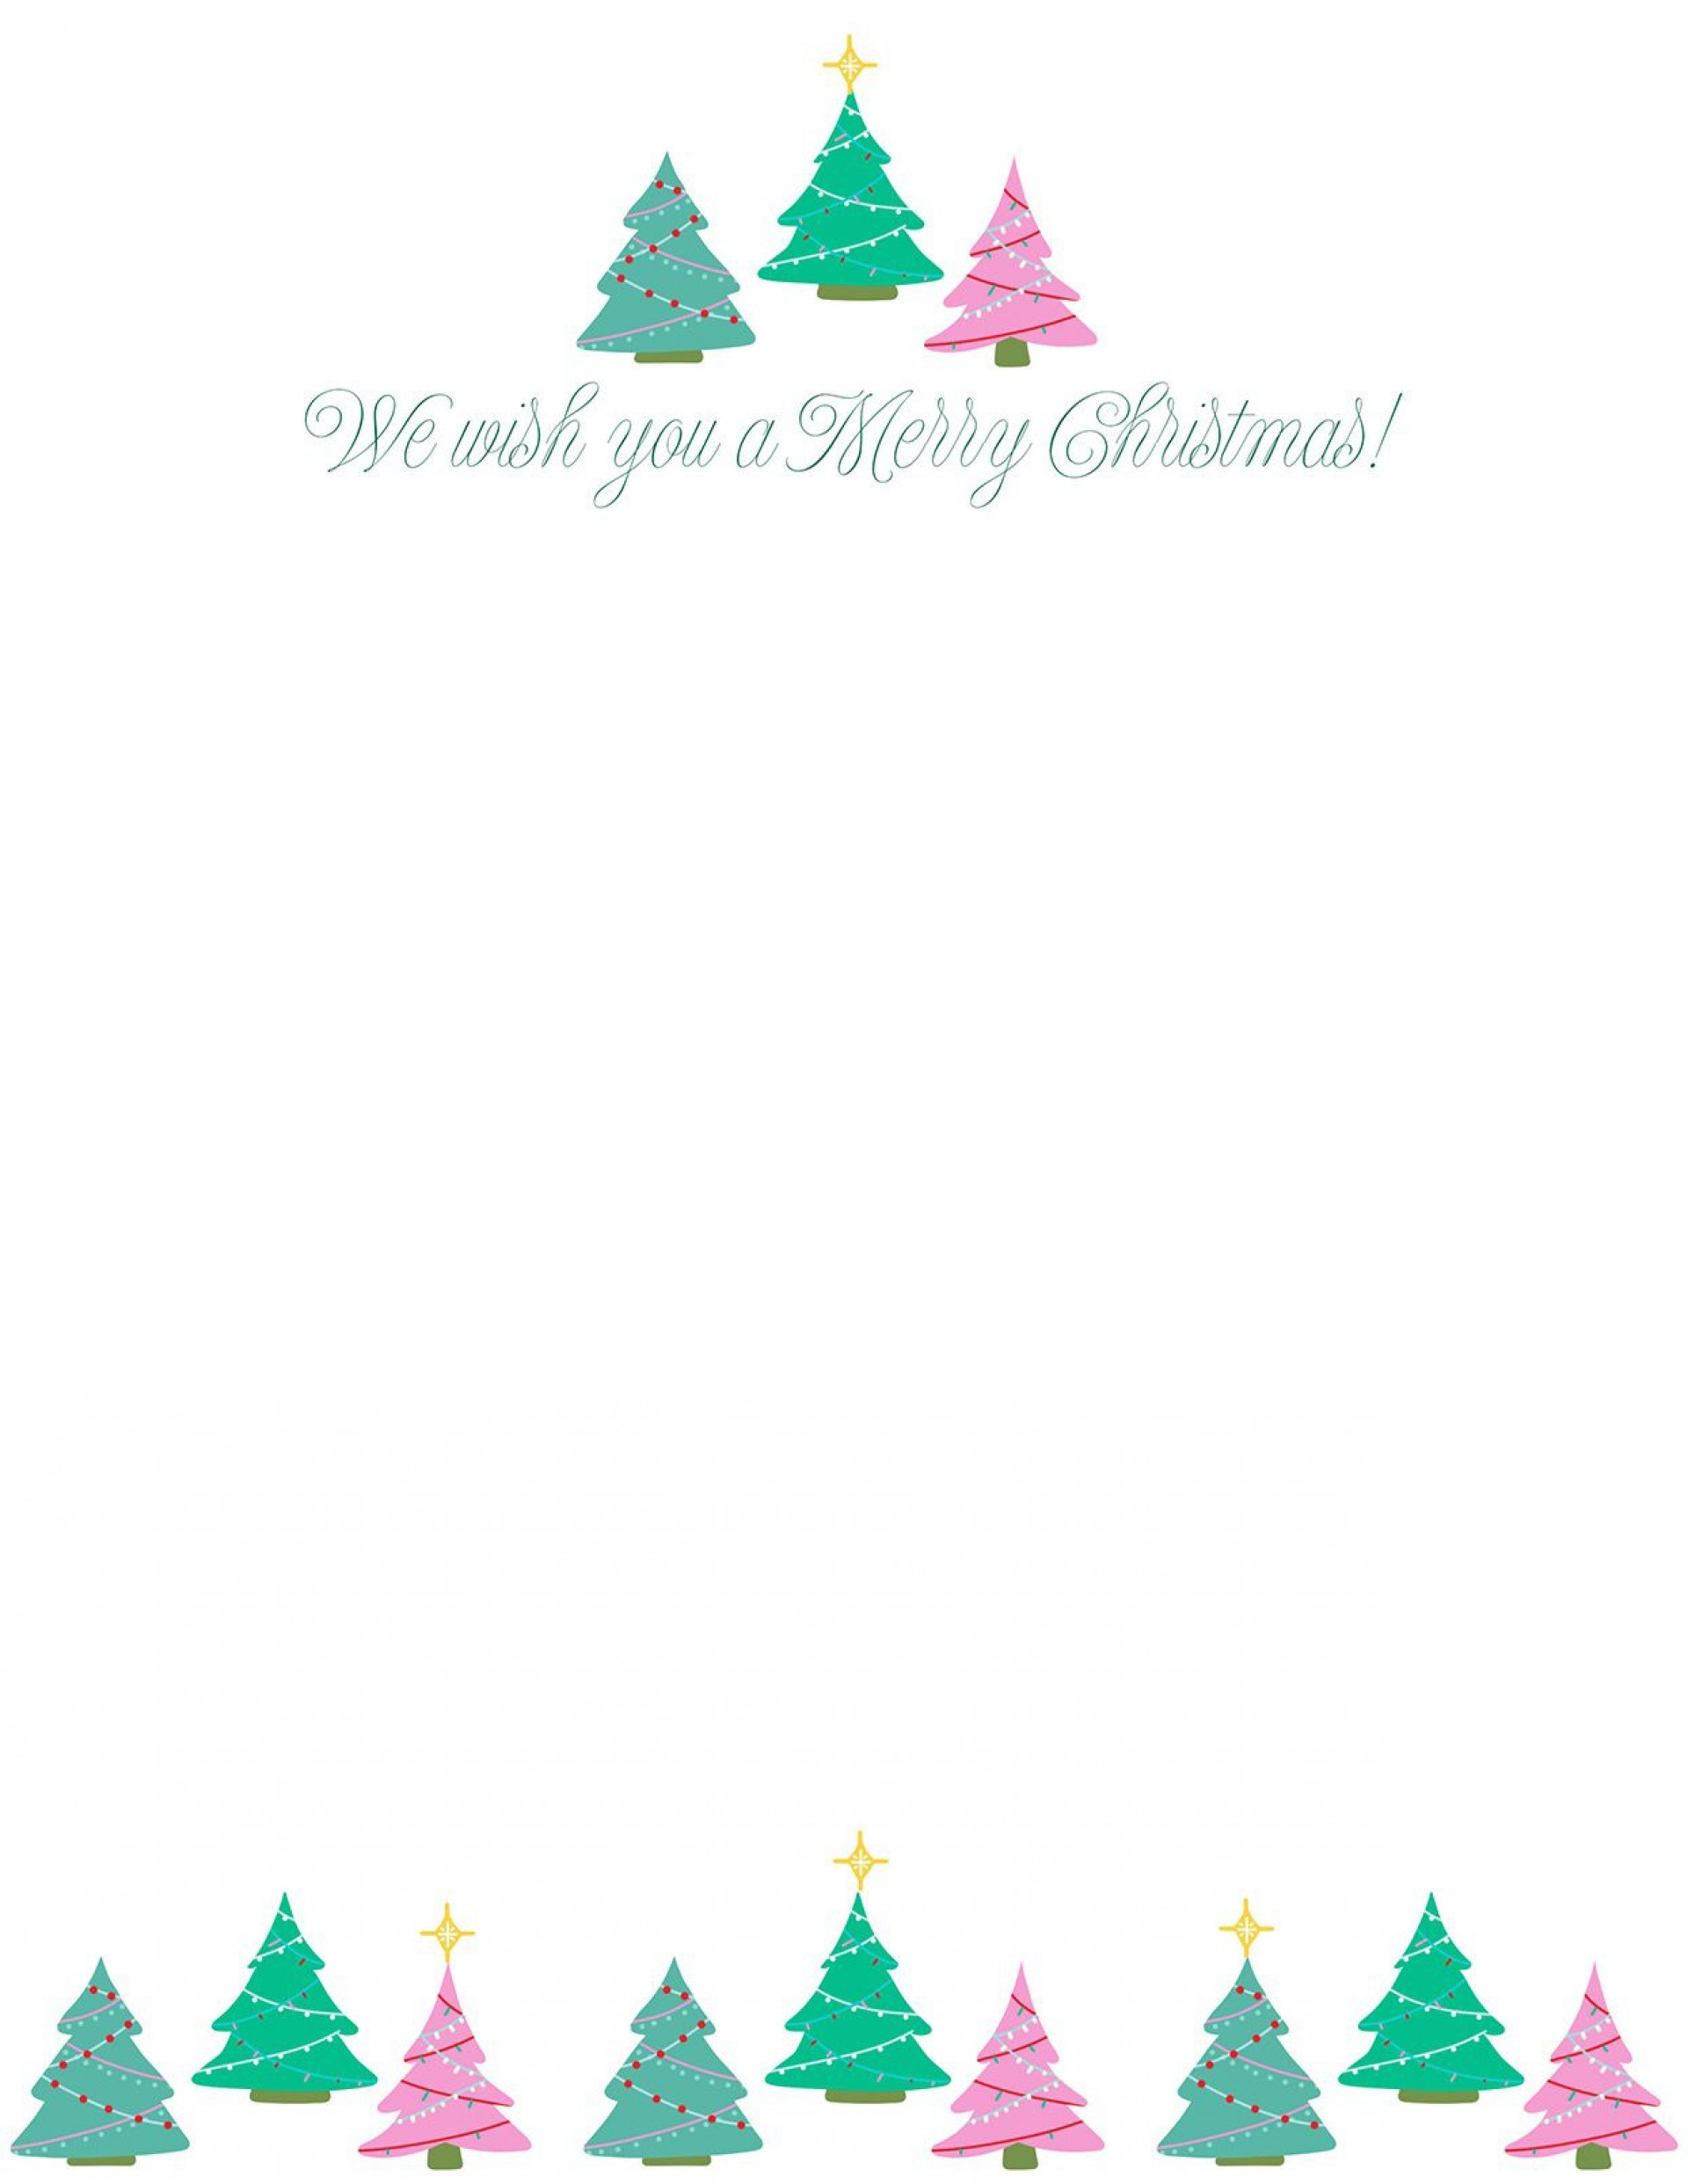 010 Imposing Free Christma Letter Template For Microsoft Word Highest Quality  Downloadable Newsletter1920